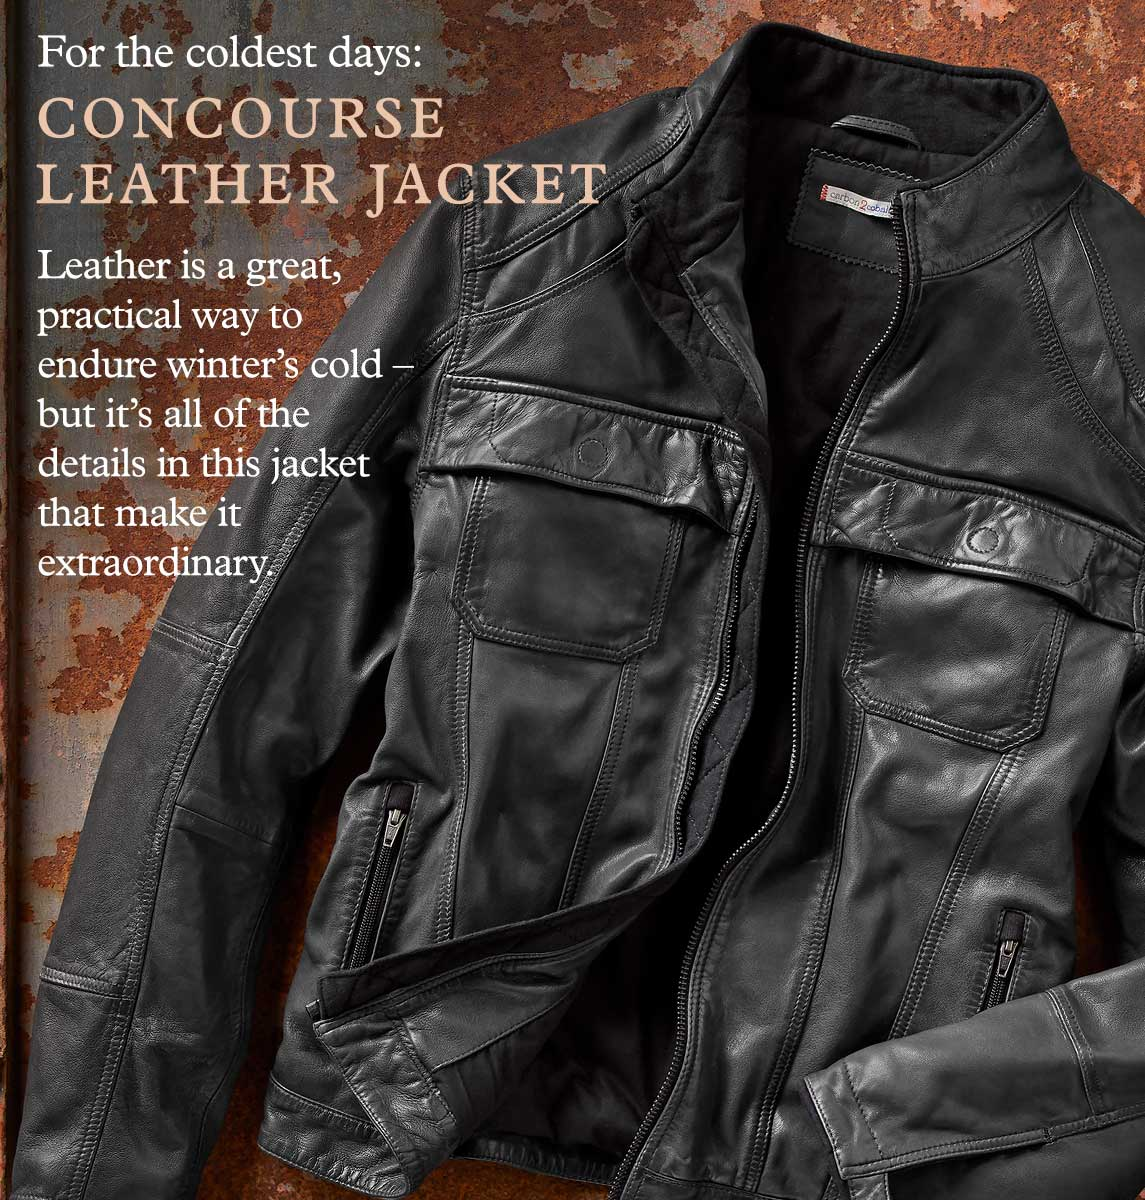 Concourse Leather Jacket